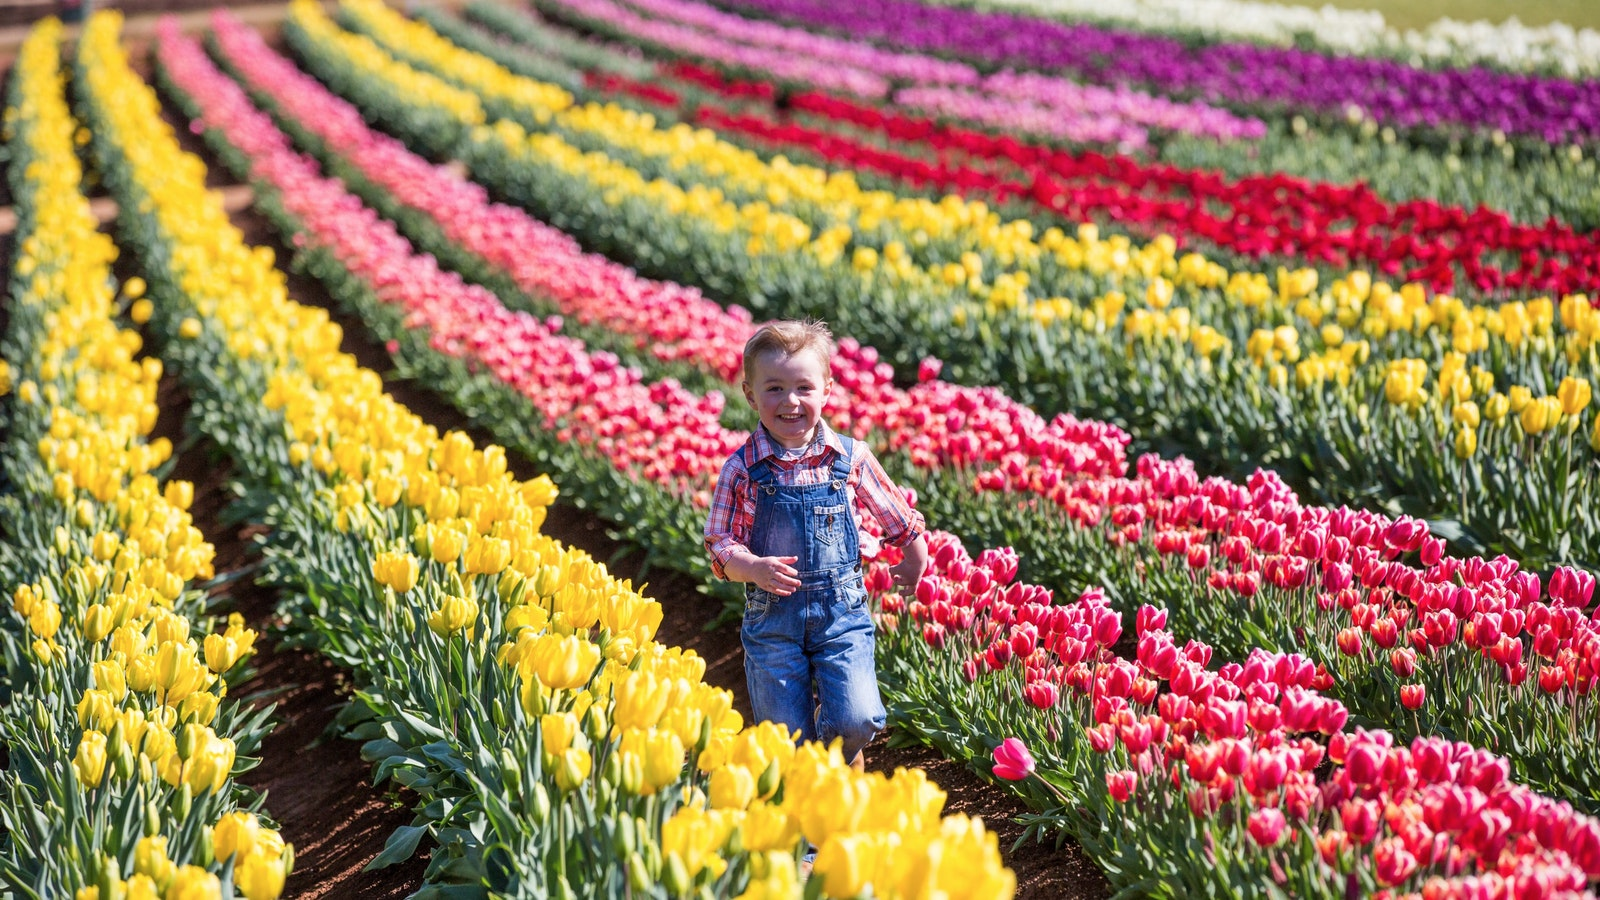 You ca be amongst the tulips at The Tesselaar Tulip Festival